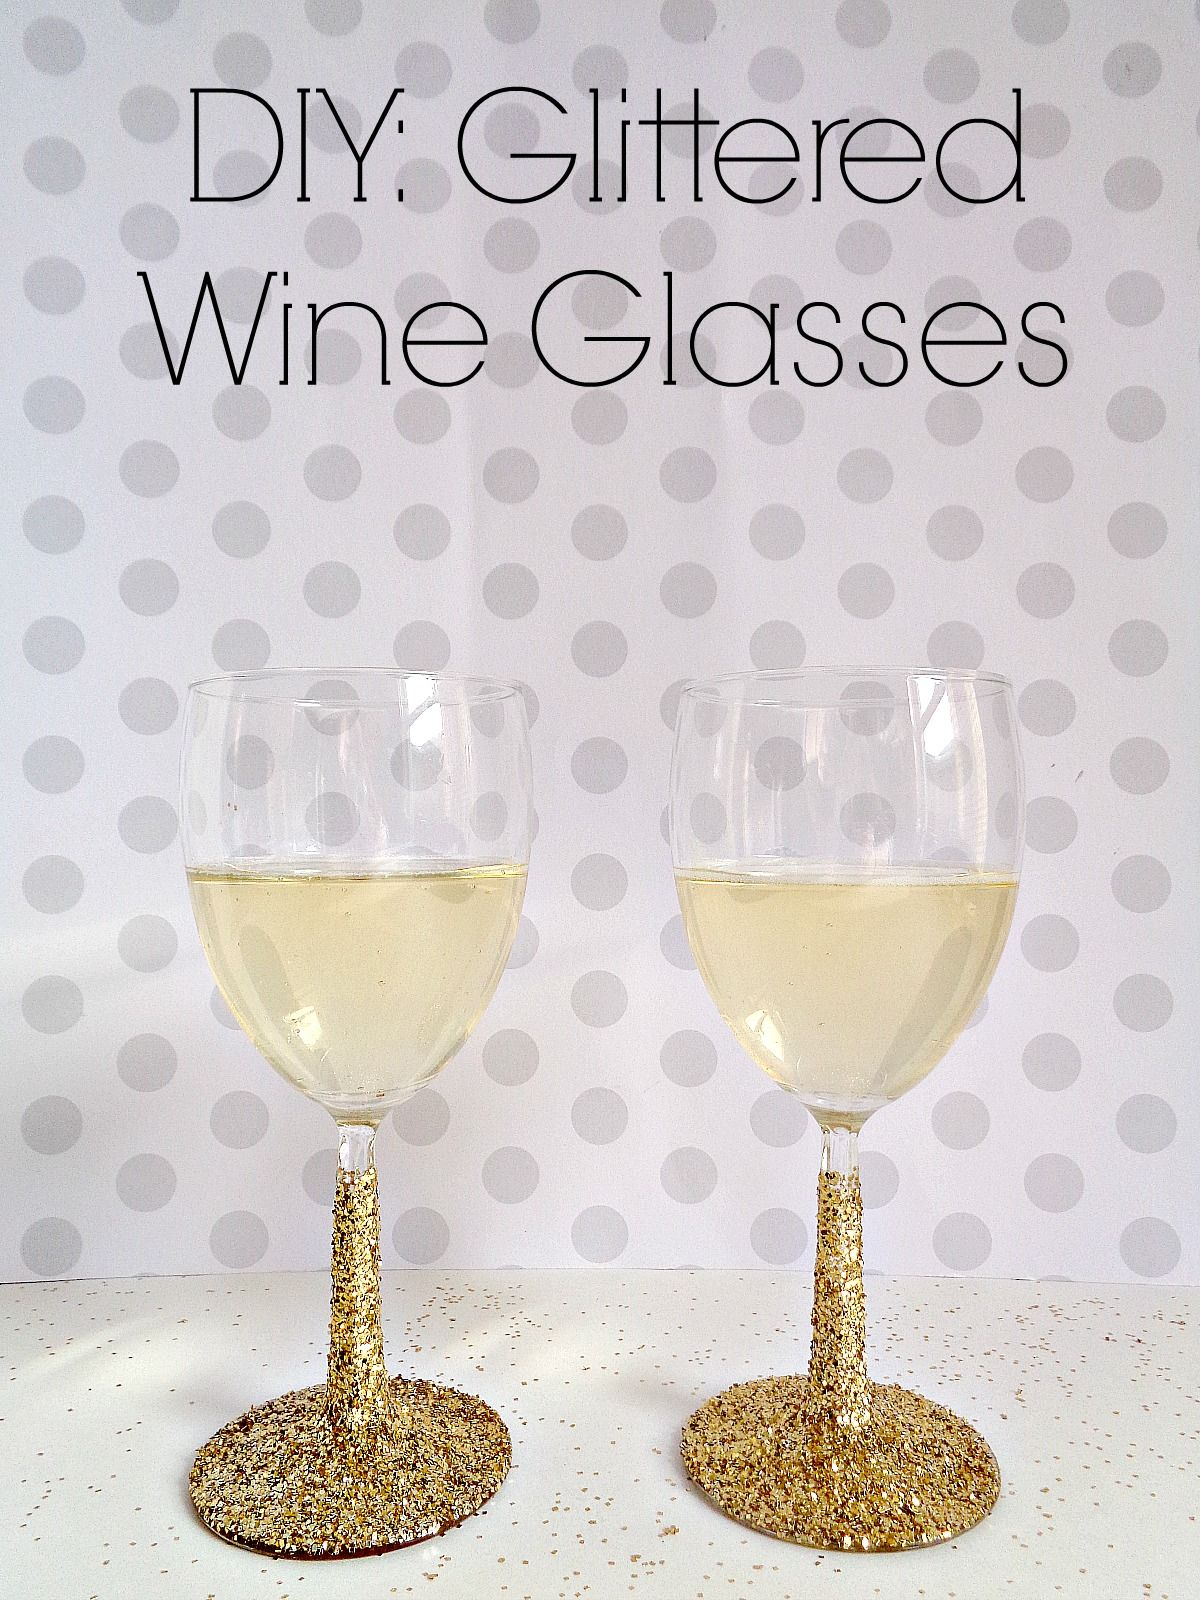 Sparkling wine glasses decorated with glitter